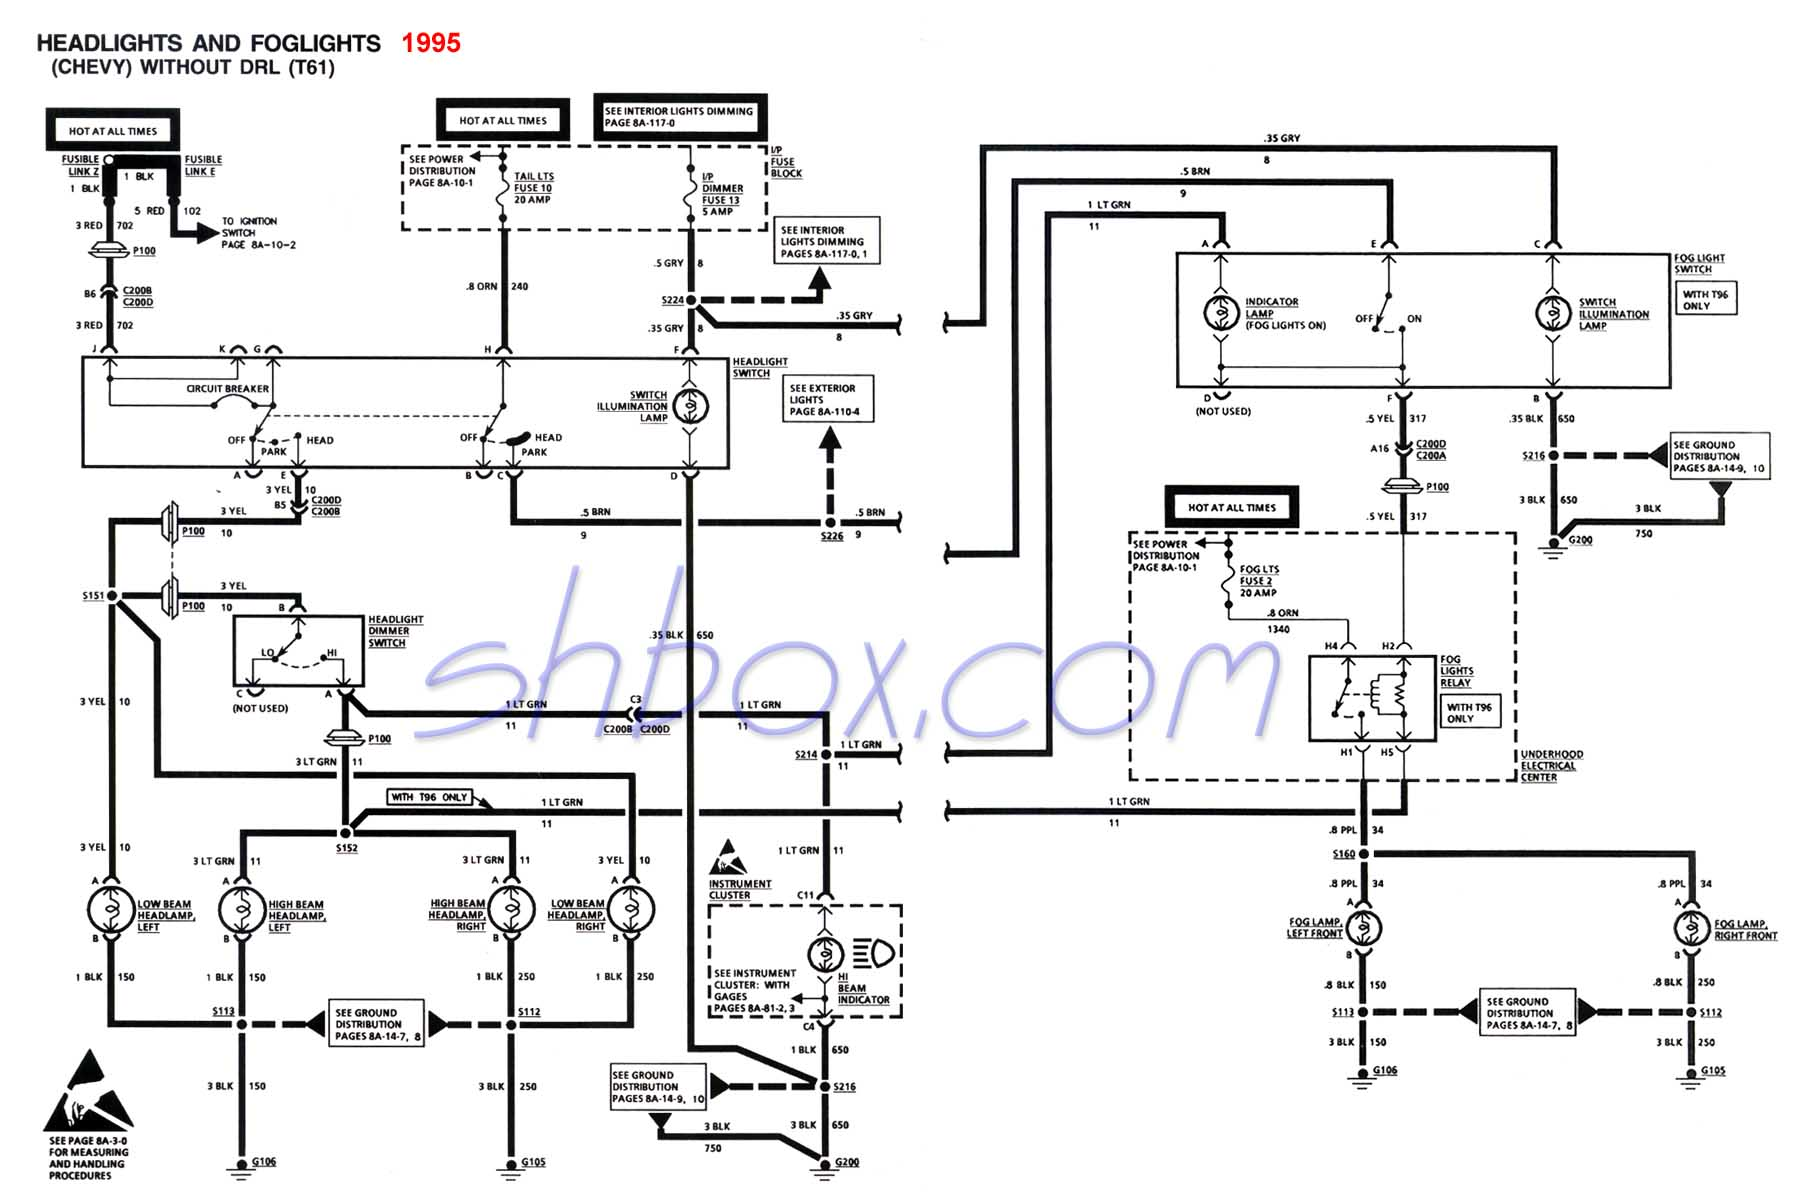 2000 Pontiac Trans Am Wiring Diagram Simple Wiring Diagram 2002 Ford  Powerstroke Wiring Diagram 2002 Pontiac Firebird Wiring Diagram